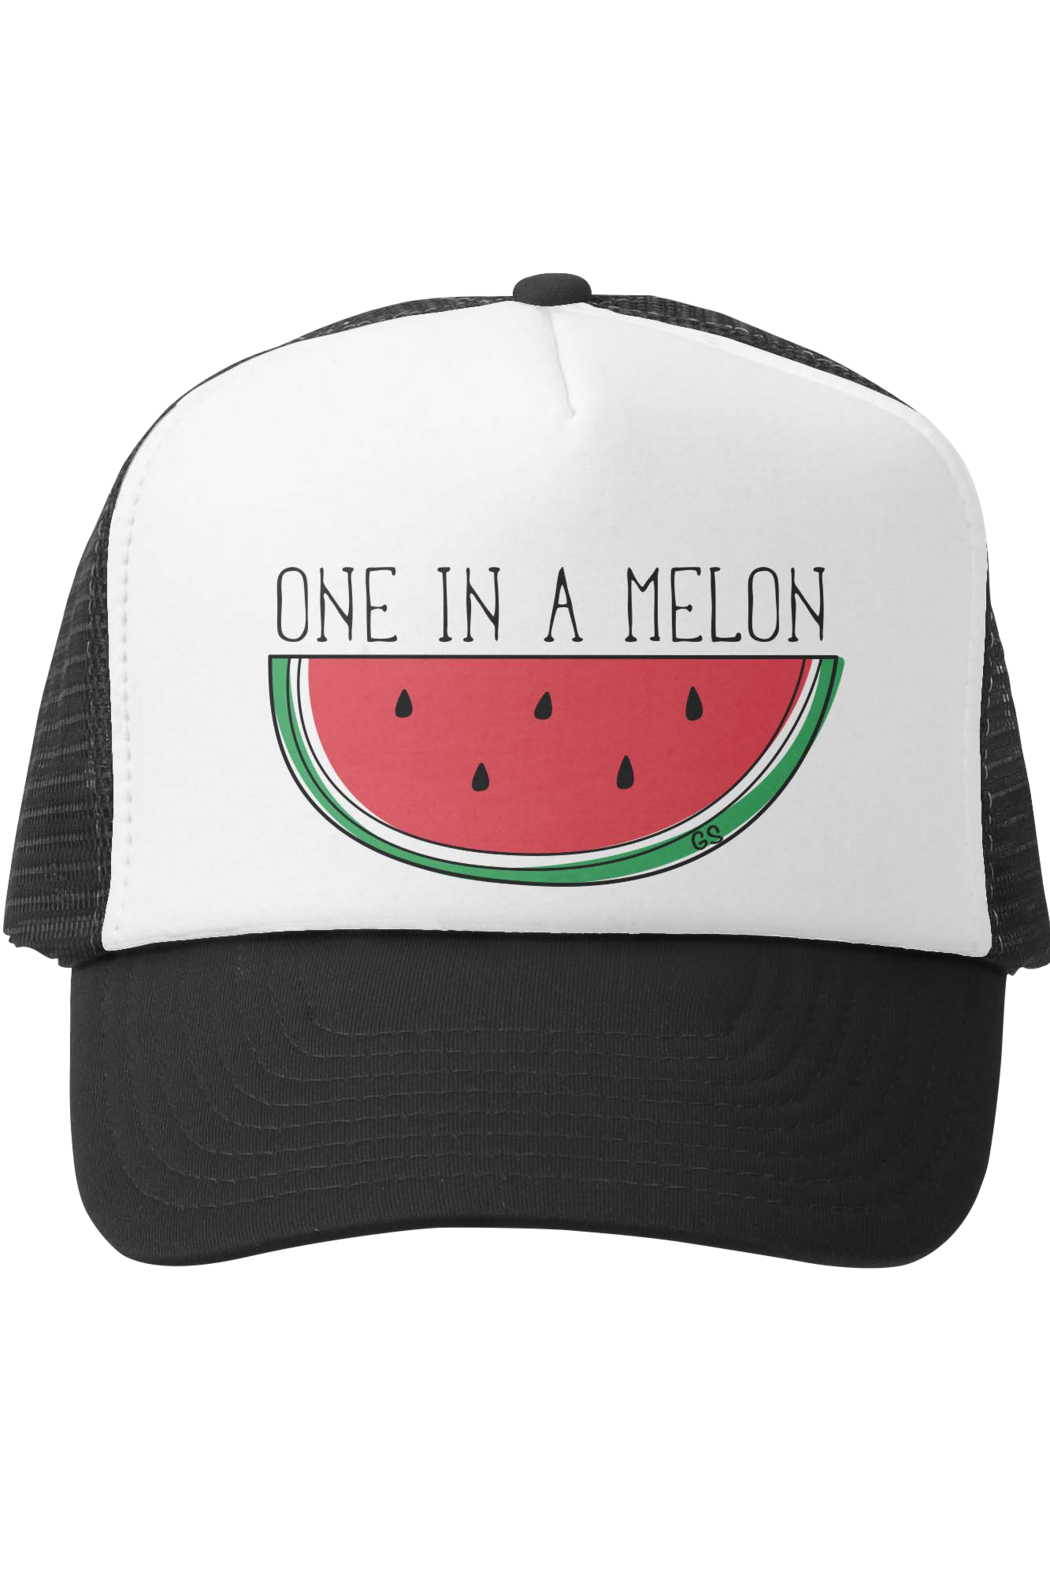 Grom Squad One In A Melon Trucker Hat - Main Image